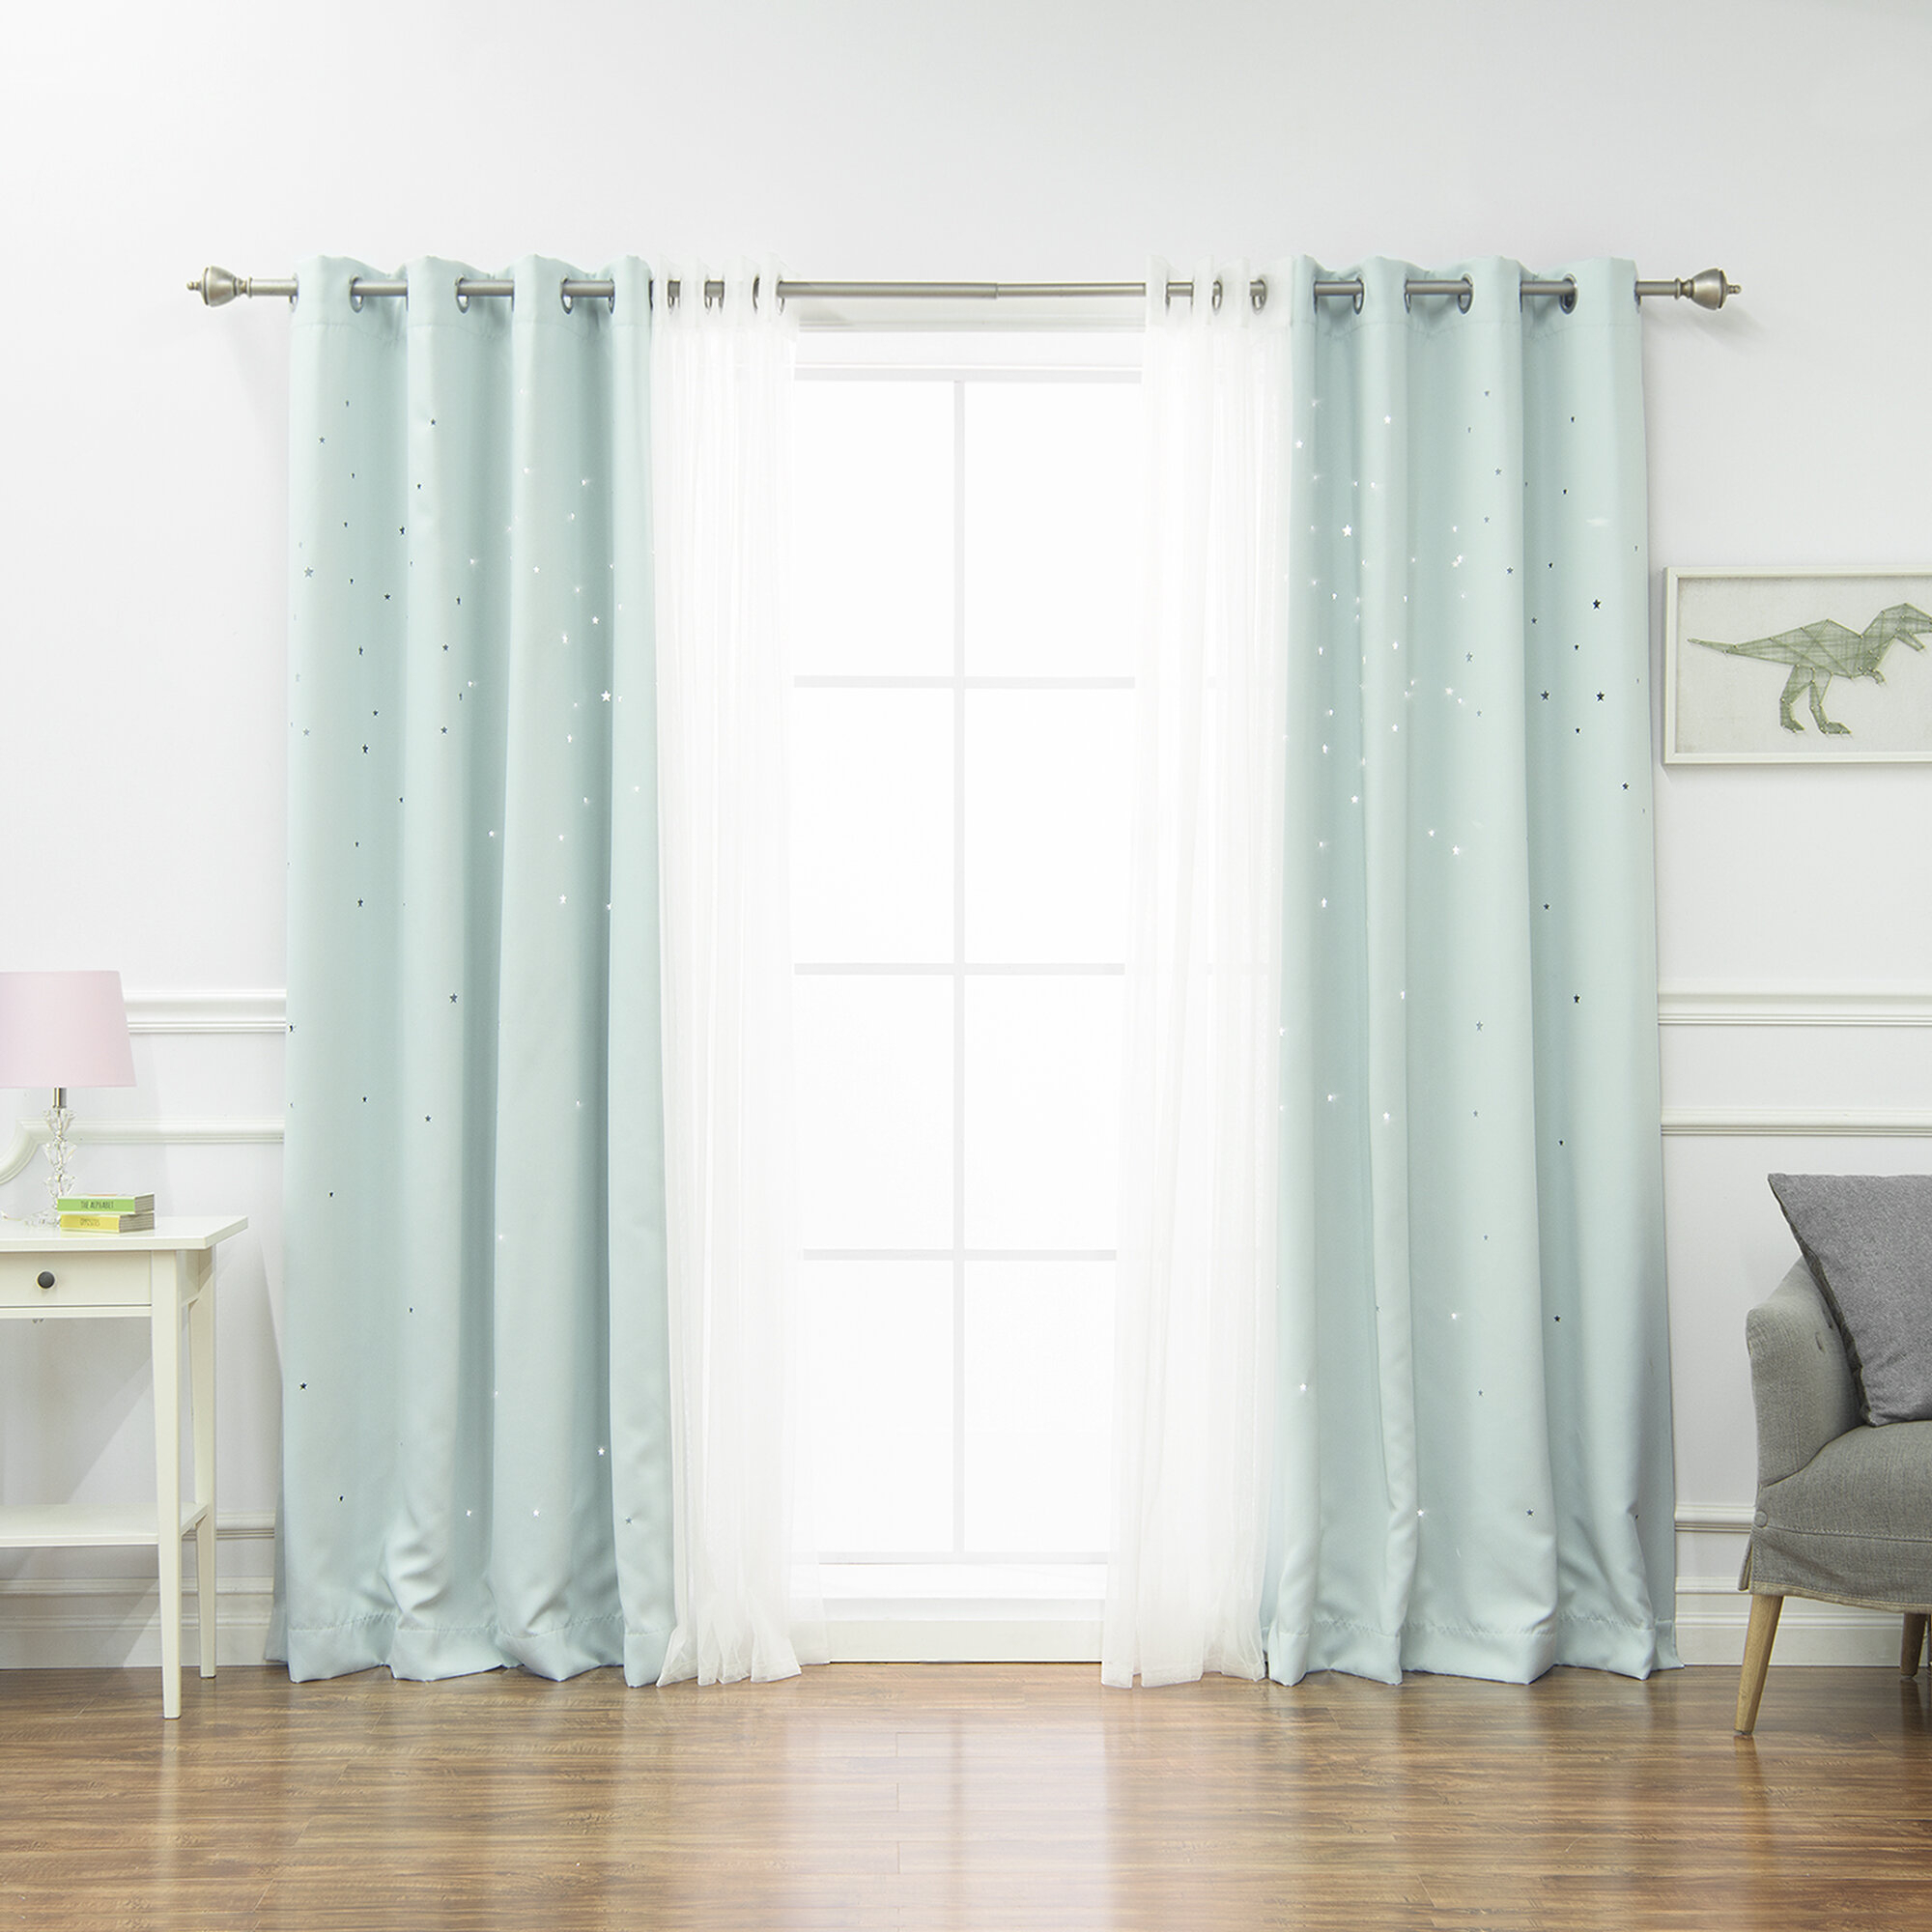 Arkose 4 Piece Tulle And Star Polka Dots Blackout Thermal Grommet Window Treatment Set Pertaining To Tulle Sheer With Attached Valance And Blackout 4 Piece Curtain Panel Pairs (View 23 of 30)